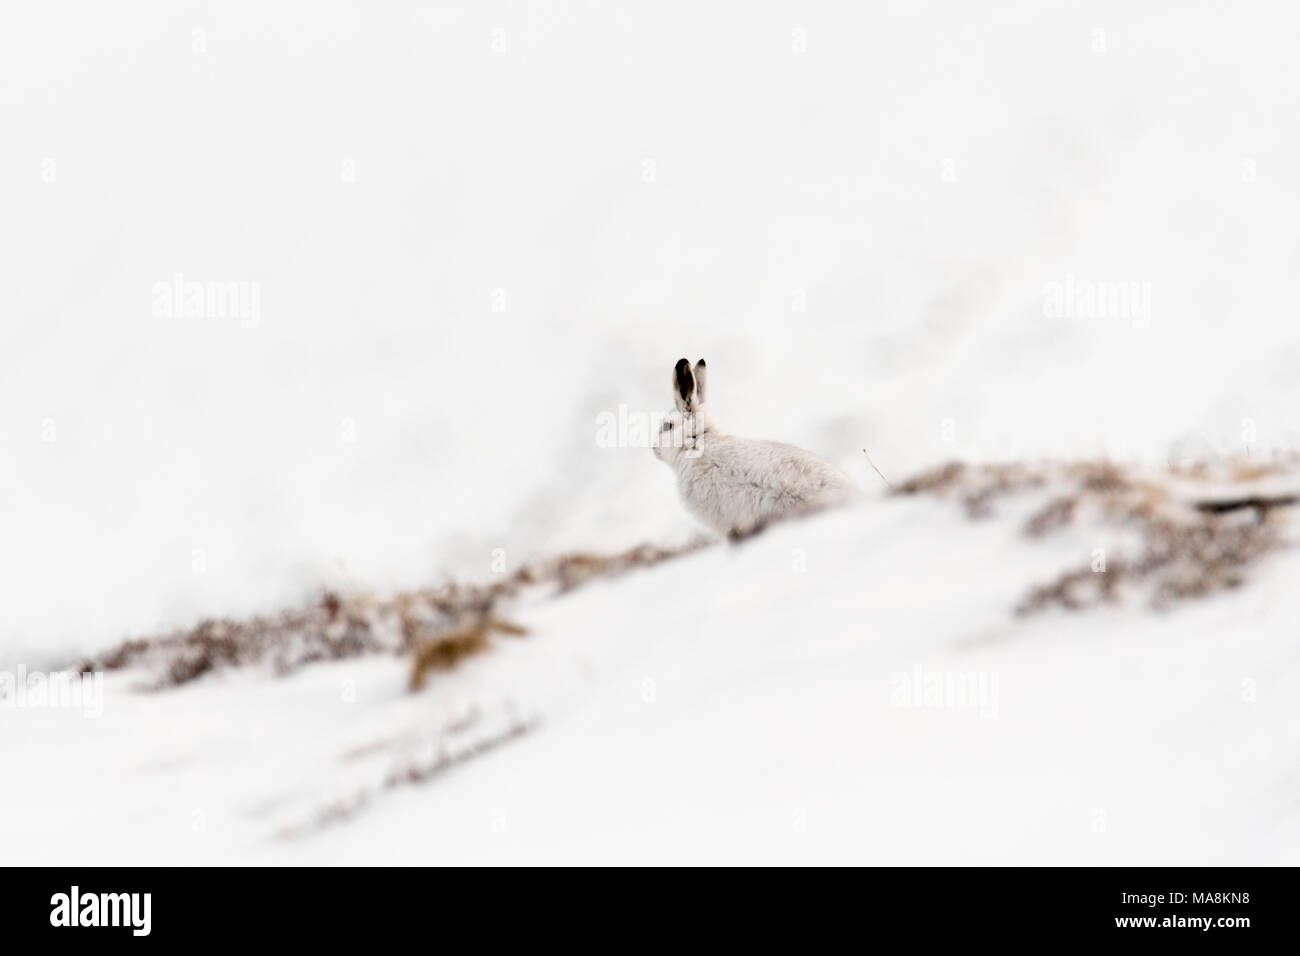 Alert mountain hare (lepus timidus) sitting on snow covered hillside in the Scottish Highlands, March 2018 - Stock Image